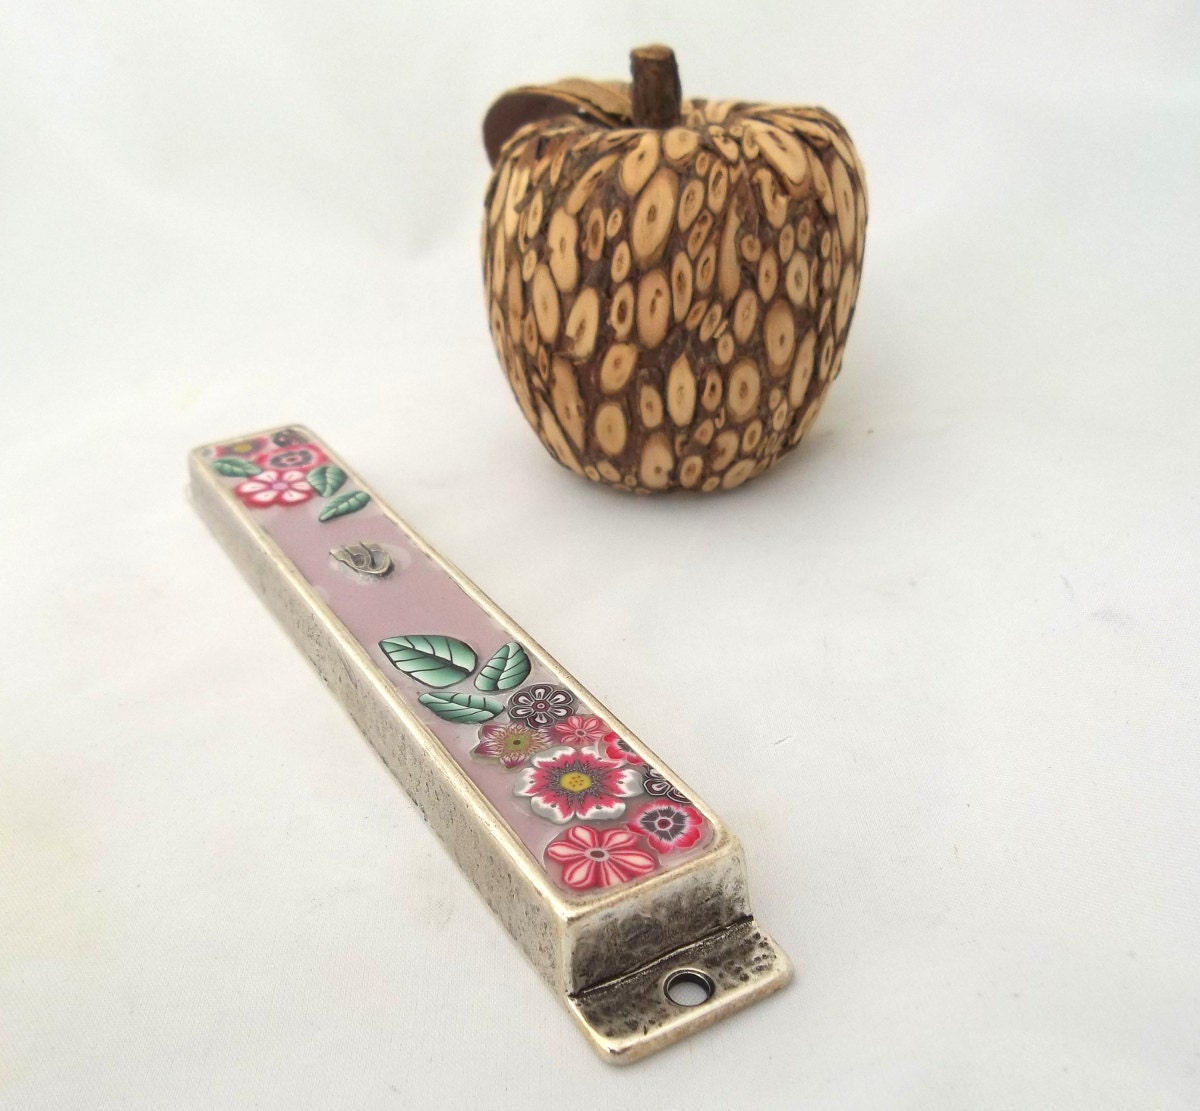 Jewish Wedding Gift List : Mezuzah Judaica gift Jewish Wedding gift Mezuza Modern